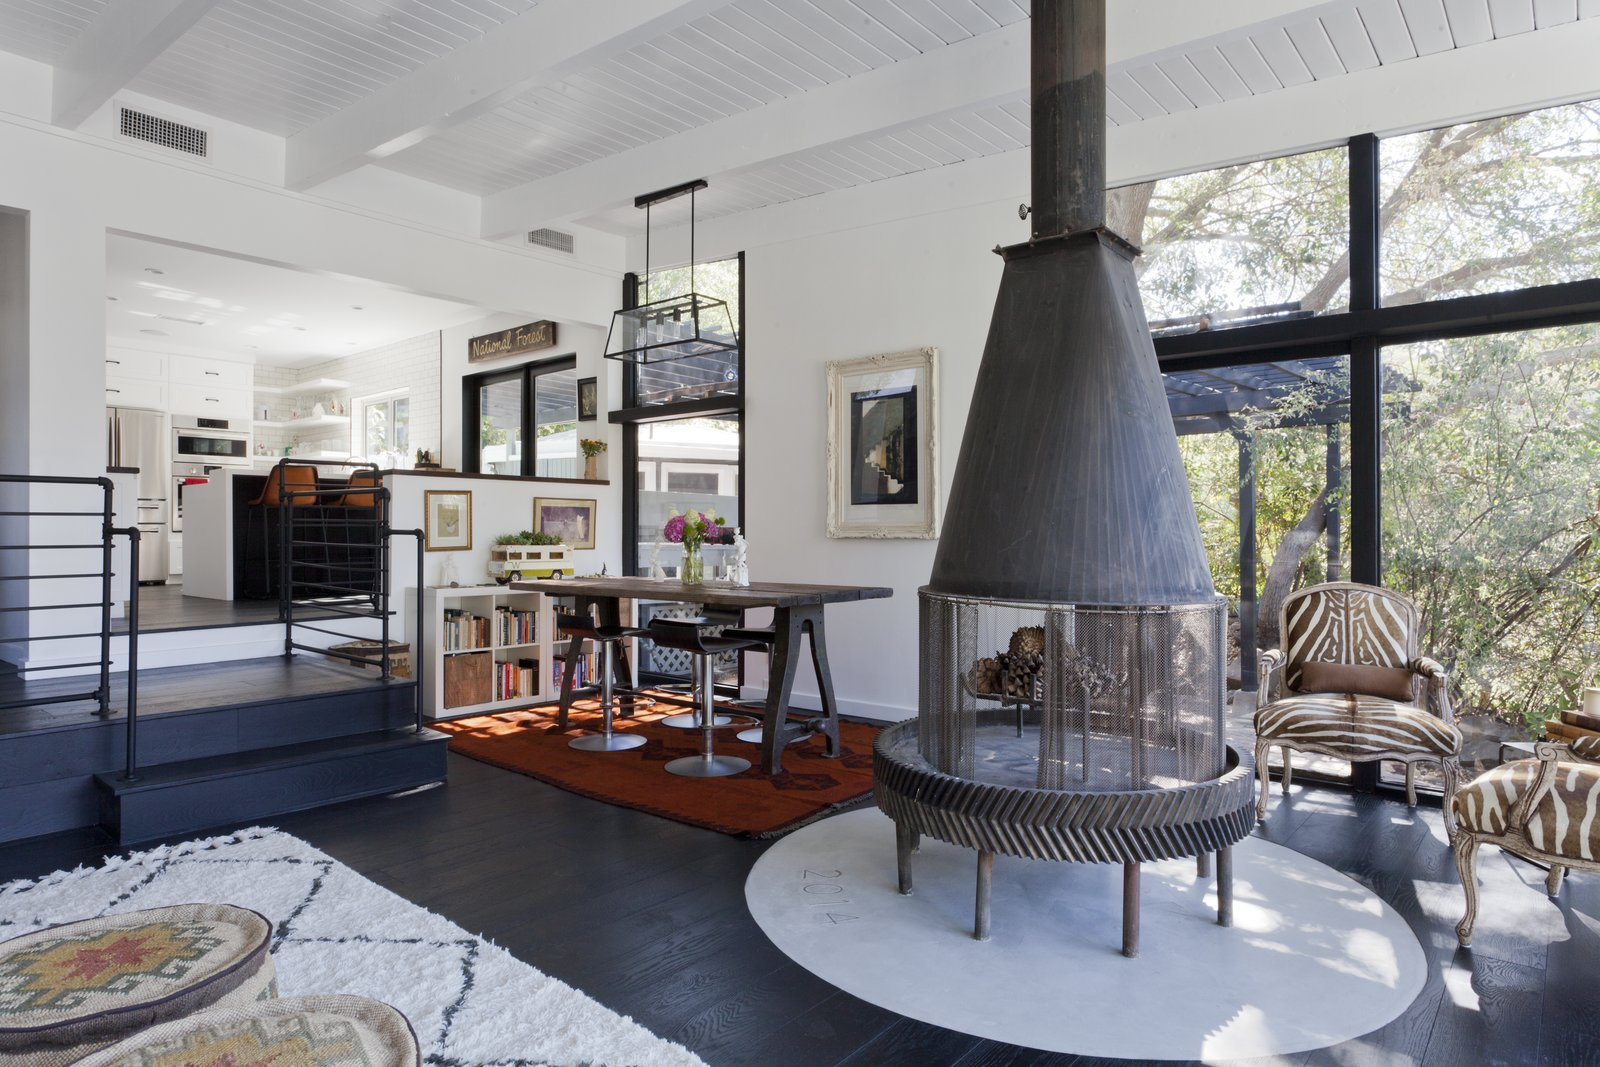 One of the home's most dramatic elements is a fireplace built from a gear from an old oil rig. To keep up with code regulations, the Hogans added a concrete base, which they customized with text celebrating the year they moved in. Tagged: Living Room, Wood Burning Fireplace, and Chair.  Photo 5 of 11 in Graphic Design Inspired This Handcrafted Canyon Hideaway